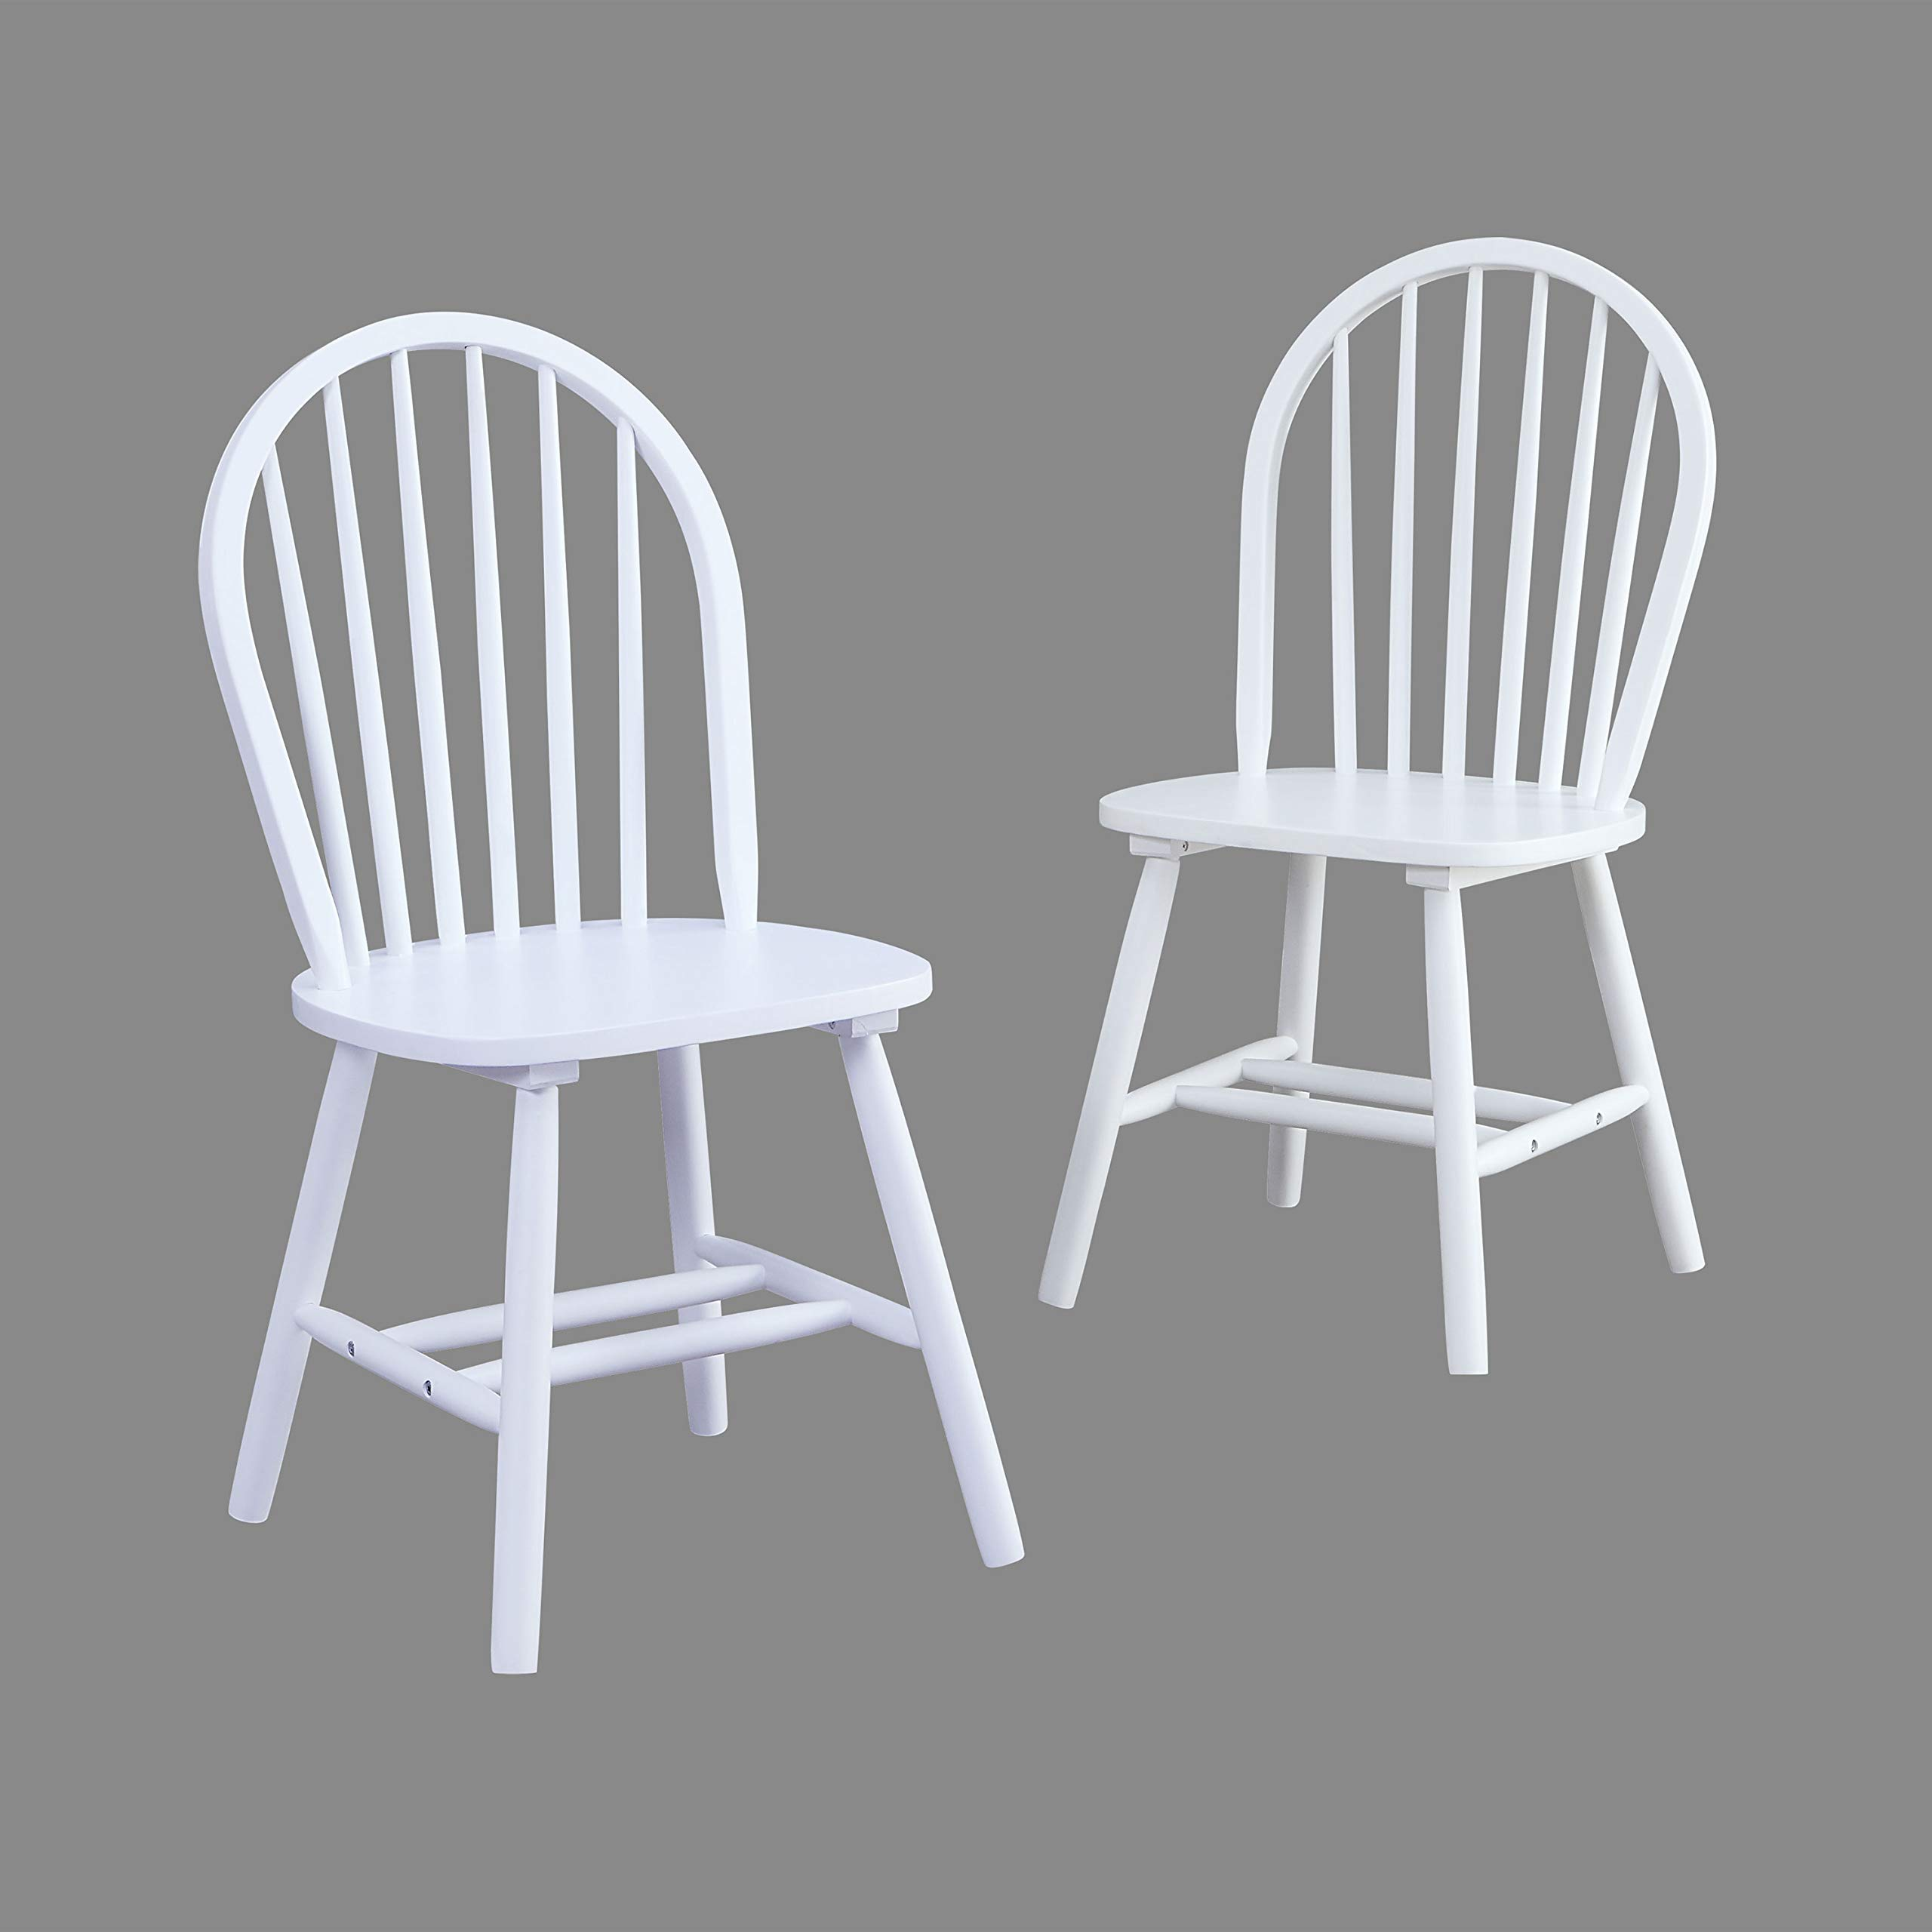 Bhg Autumn Lane Windsor Solid Wood Dining Chairs White